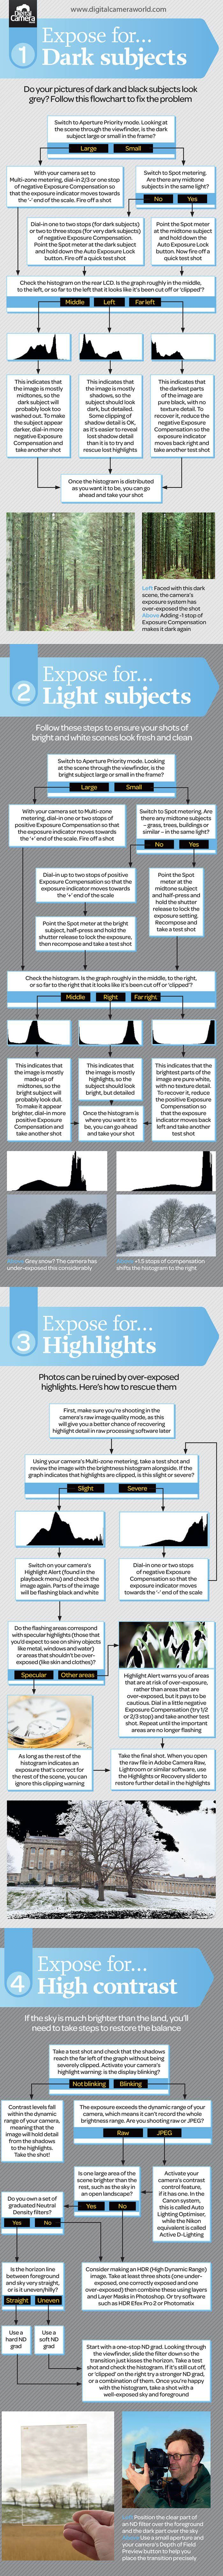 Cheat Sheet: How to Get Metering and Exposure Right. http://digital-photography-school.com/cheat-sheet-get-metering-exposure-right/